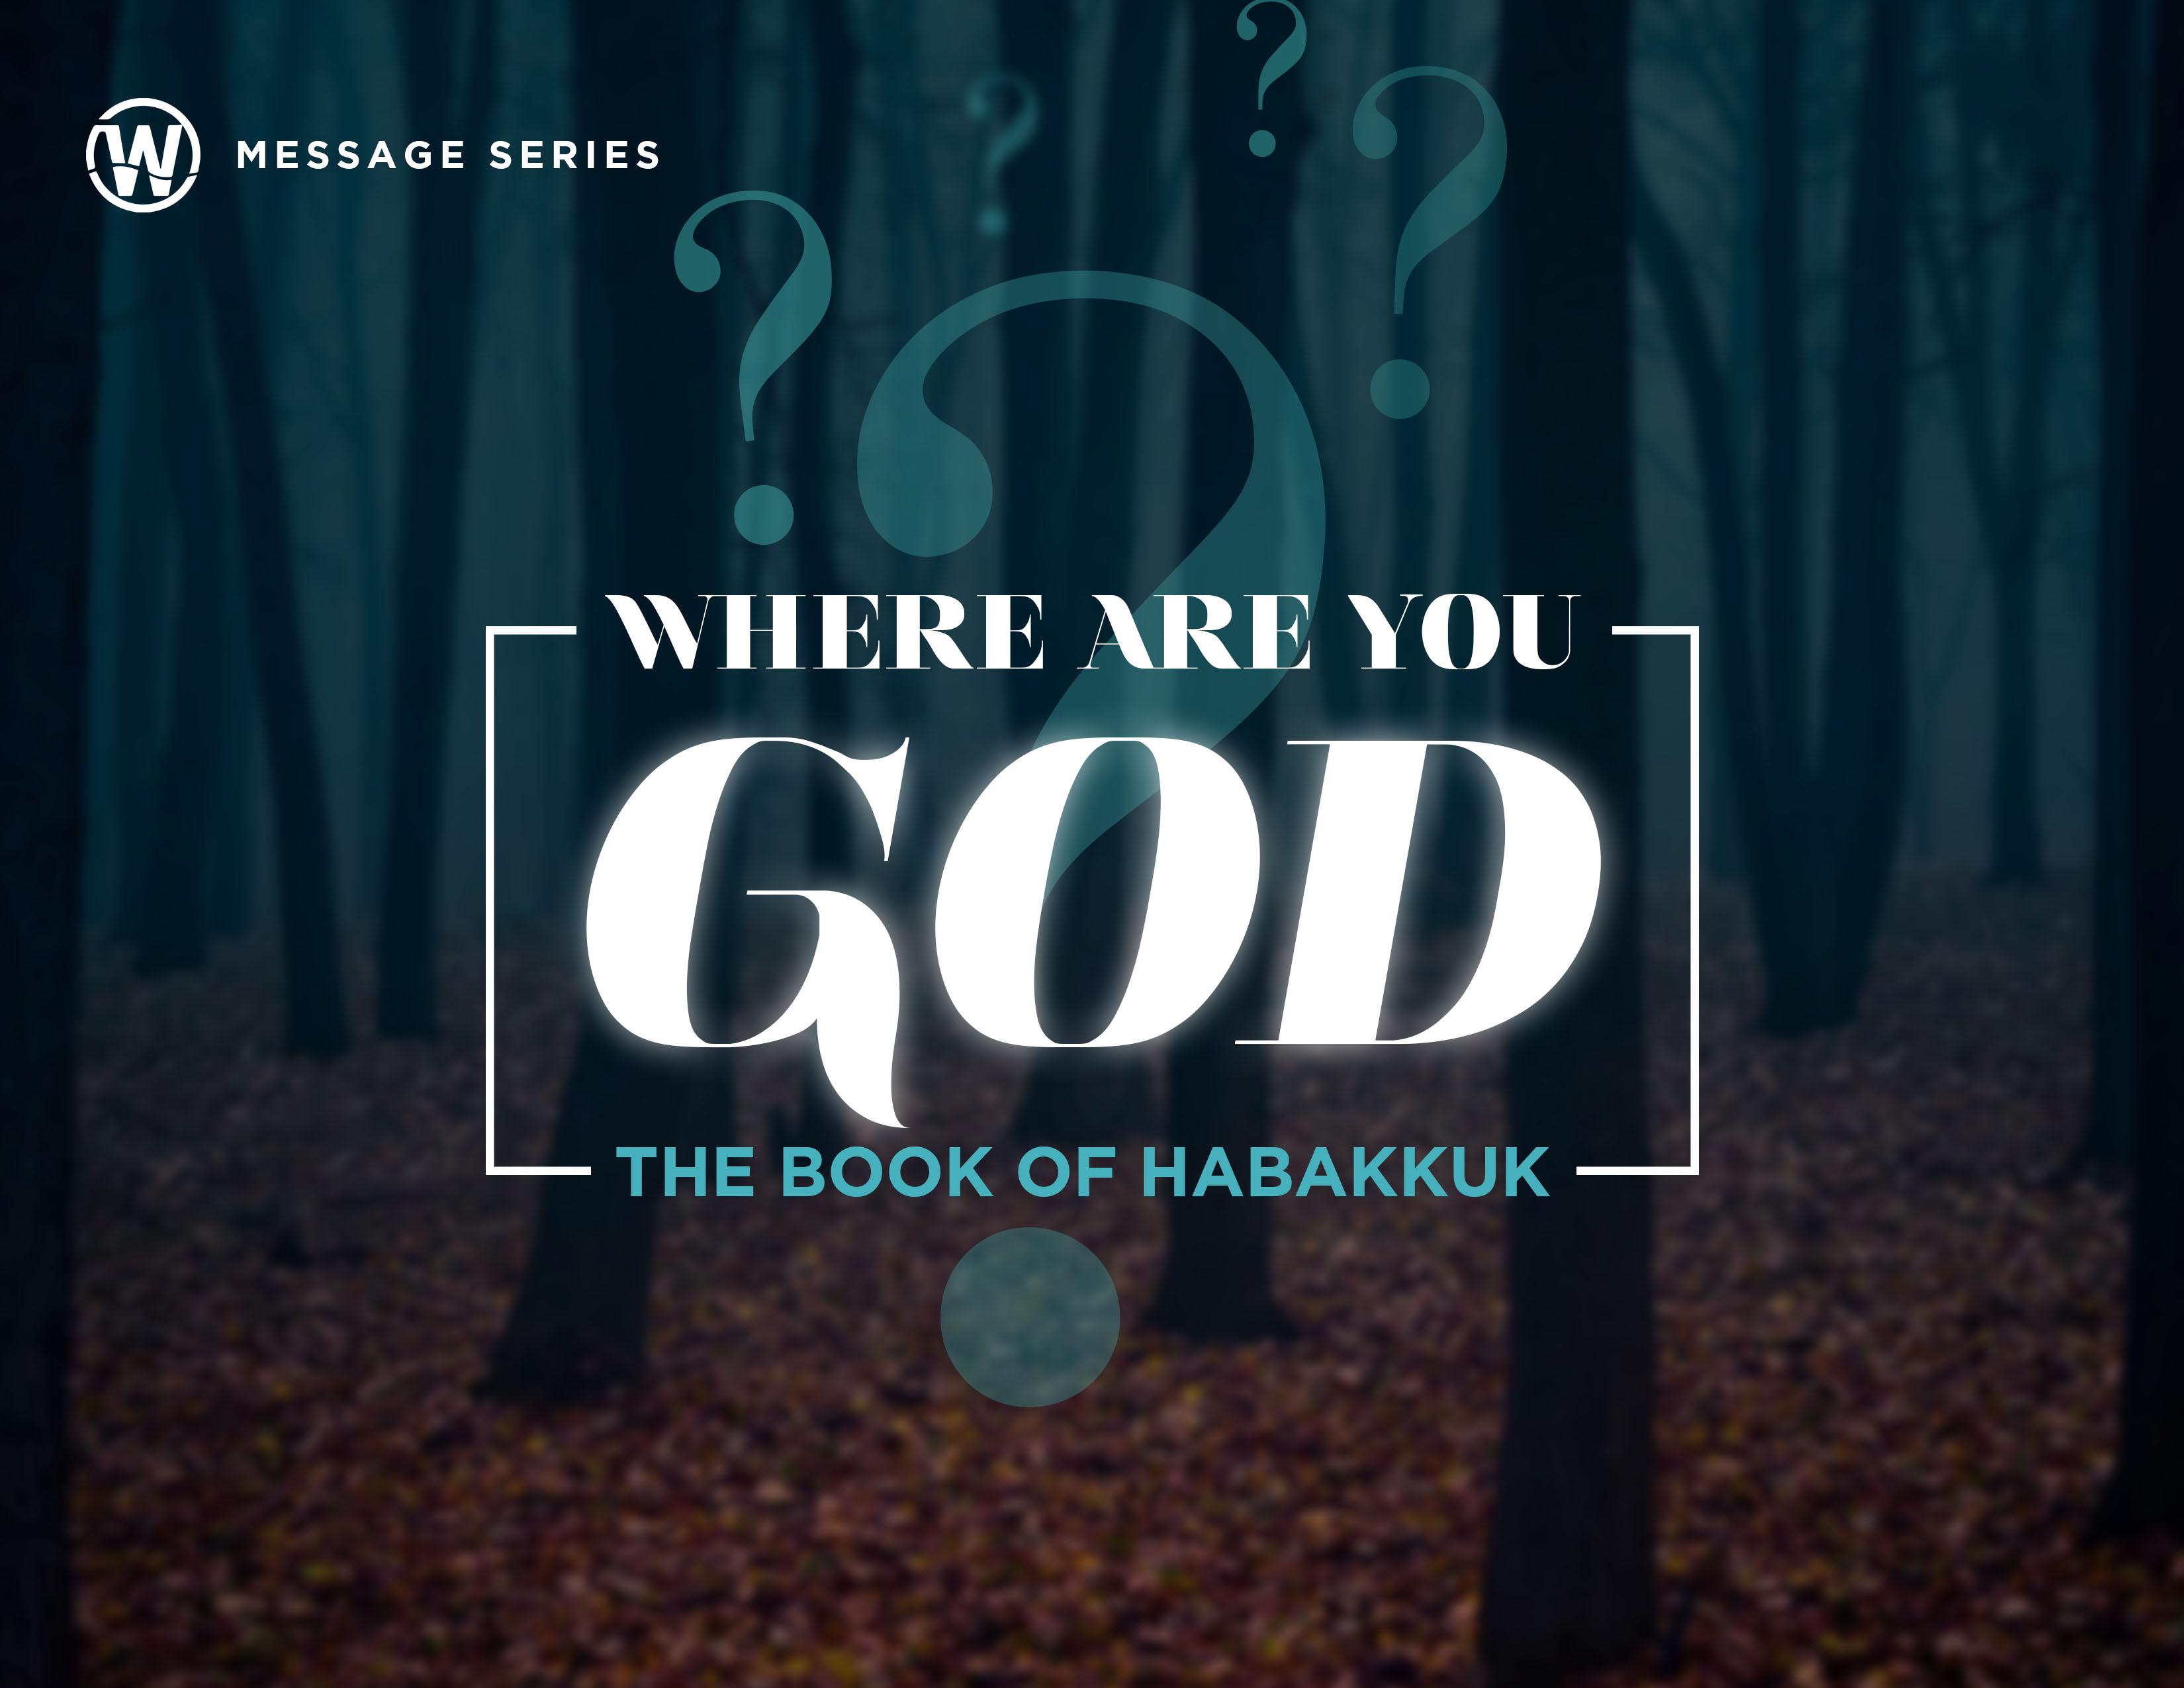 Habakkuk - Where are you God?